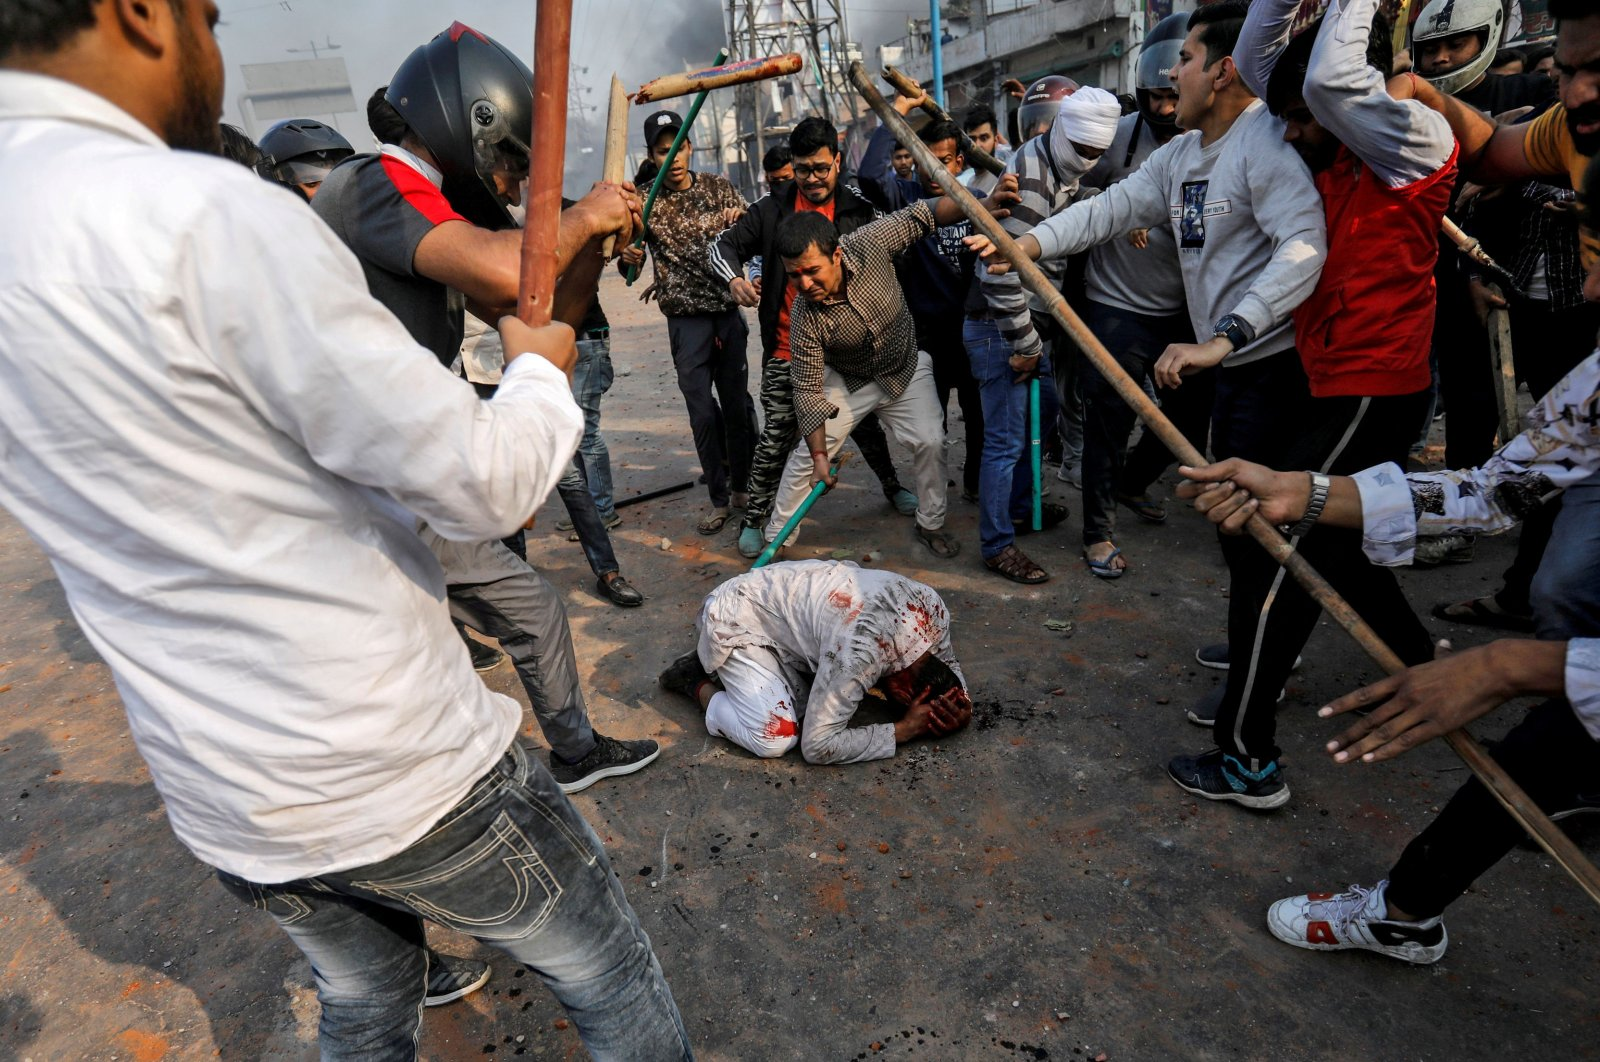 A group of men chanting pro-Hindu slogans beat Mohammad Zubair, 37, who is Muslim, during protests sparked by a new citizenship law in New Delhi, Feb. 24, 2020. (Reuters Photo)